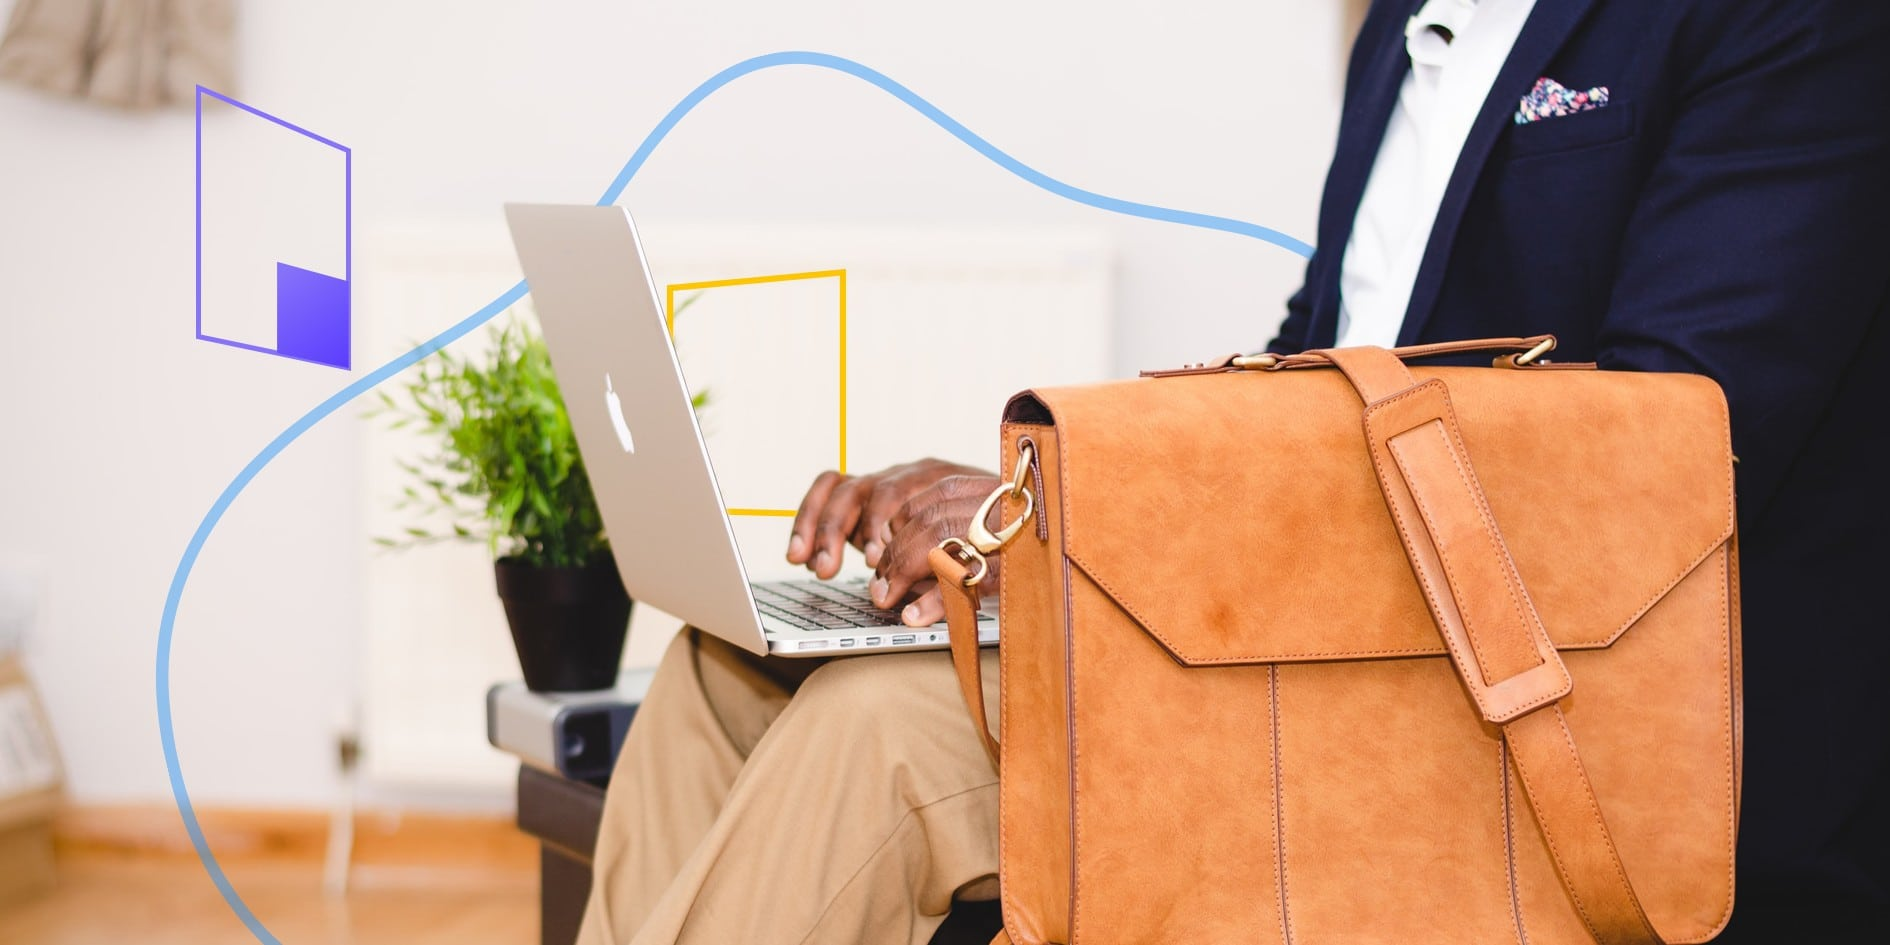 How to Hire Remote Workers: A Quick Guide and Free Contract